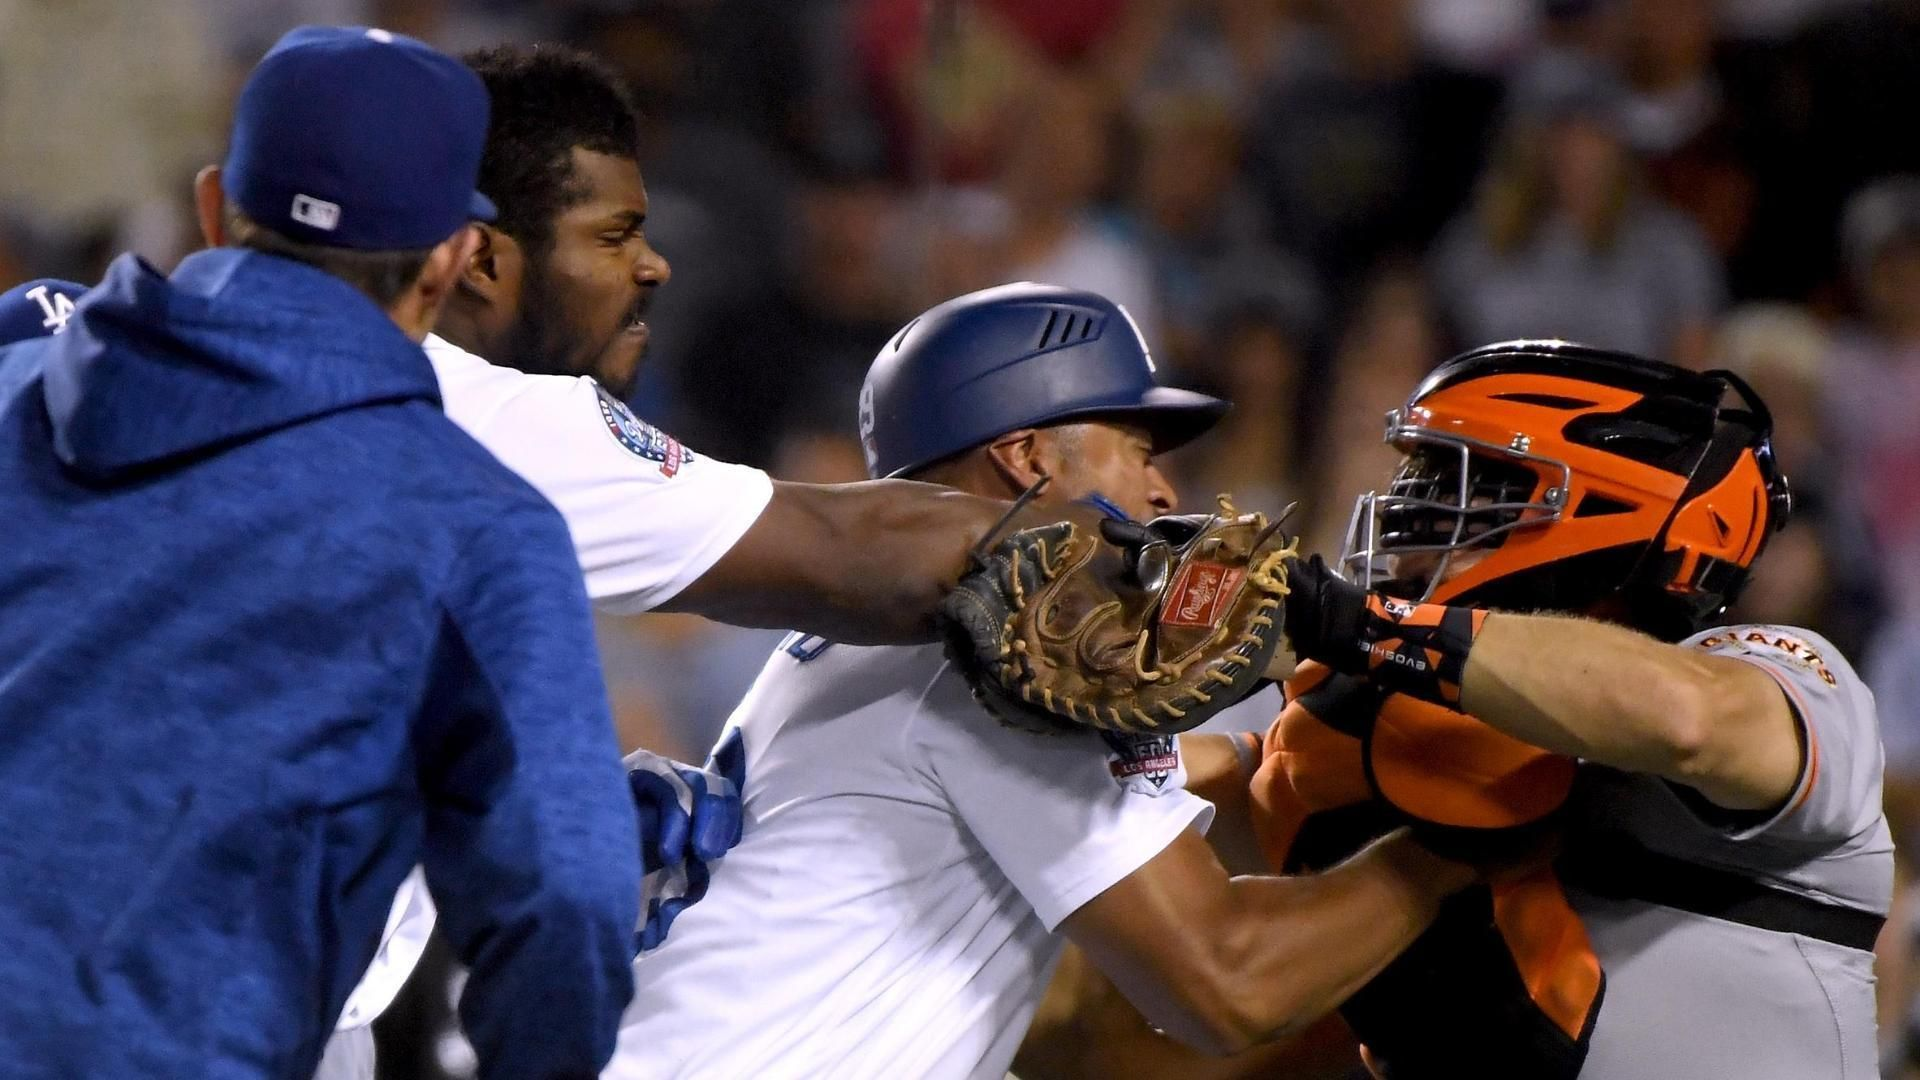 Puig, Hundley both ejected after scuffle